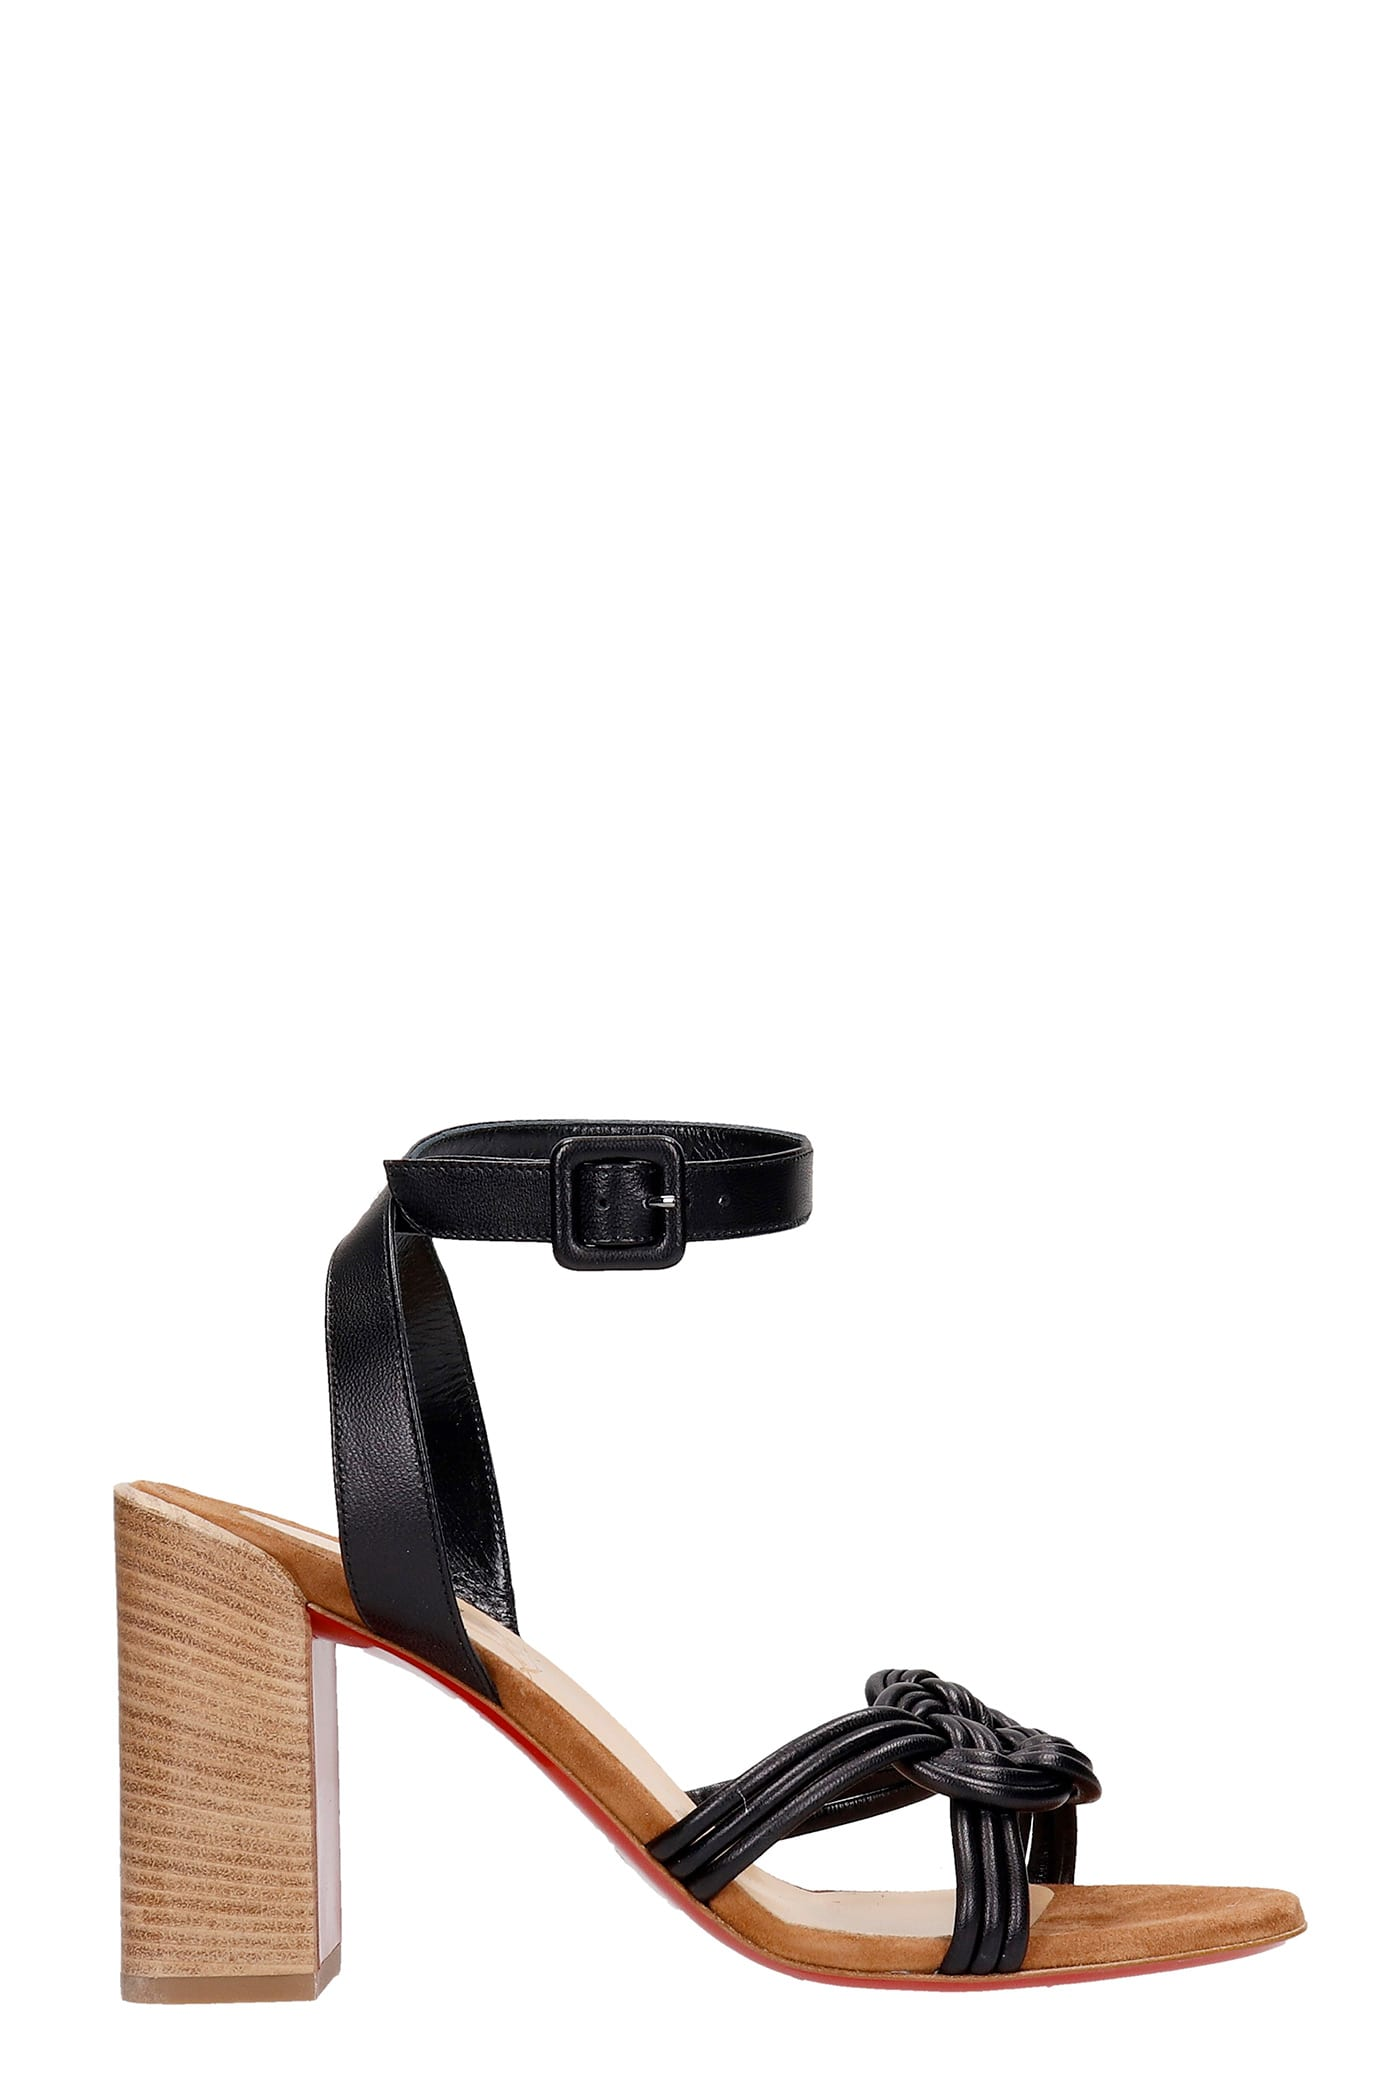 Christian Louboutin ELLA 85 SANDALS IN BLACK LEATHER